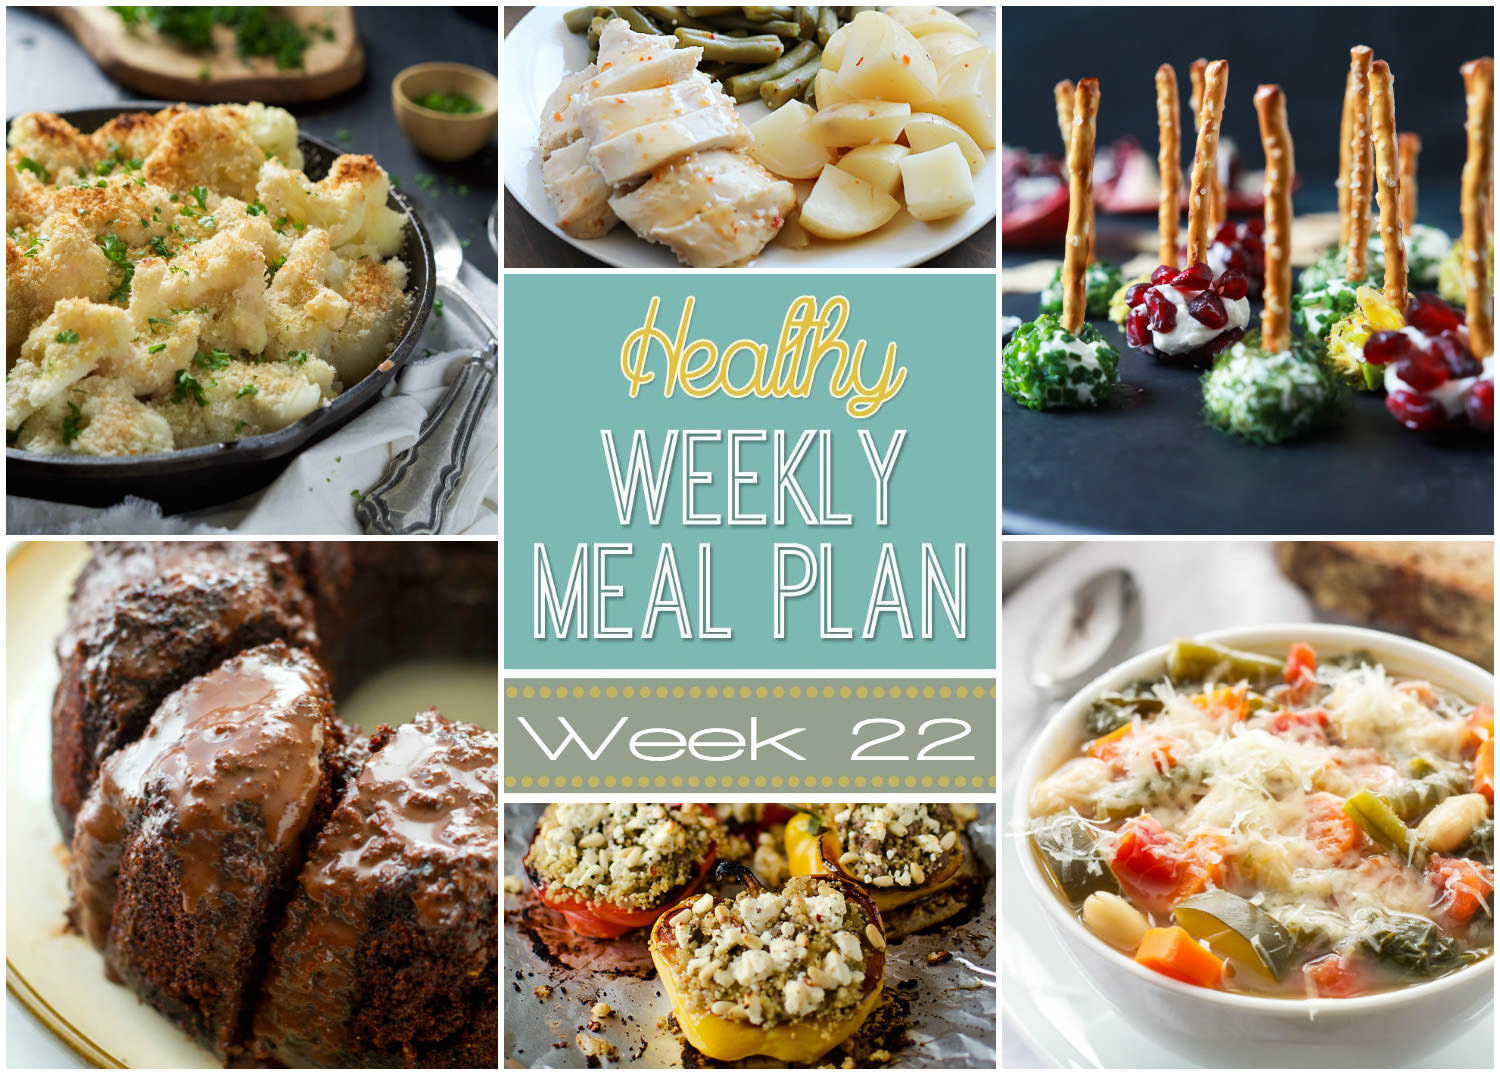 Healthy Weekly Meal Plan #22 starts off with comforting dishes such as Honey Roasted Butternut Squash and Crispy Buffalo Chicken Salad!